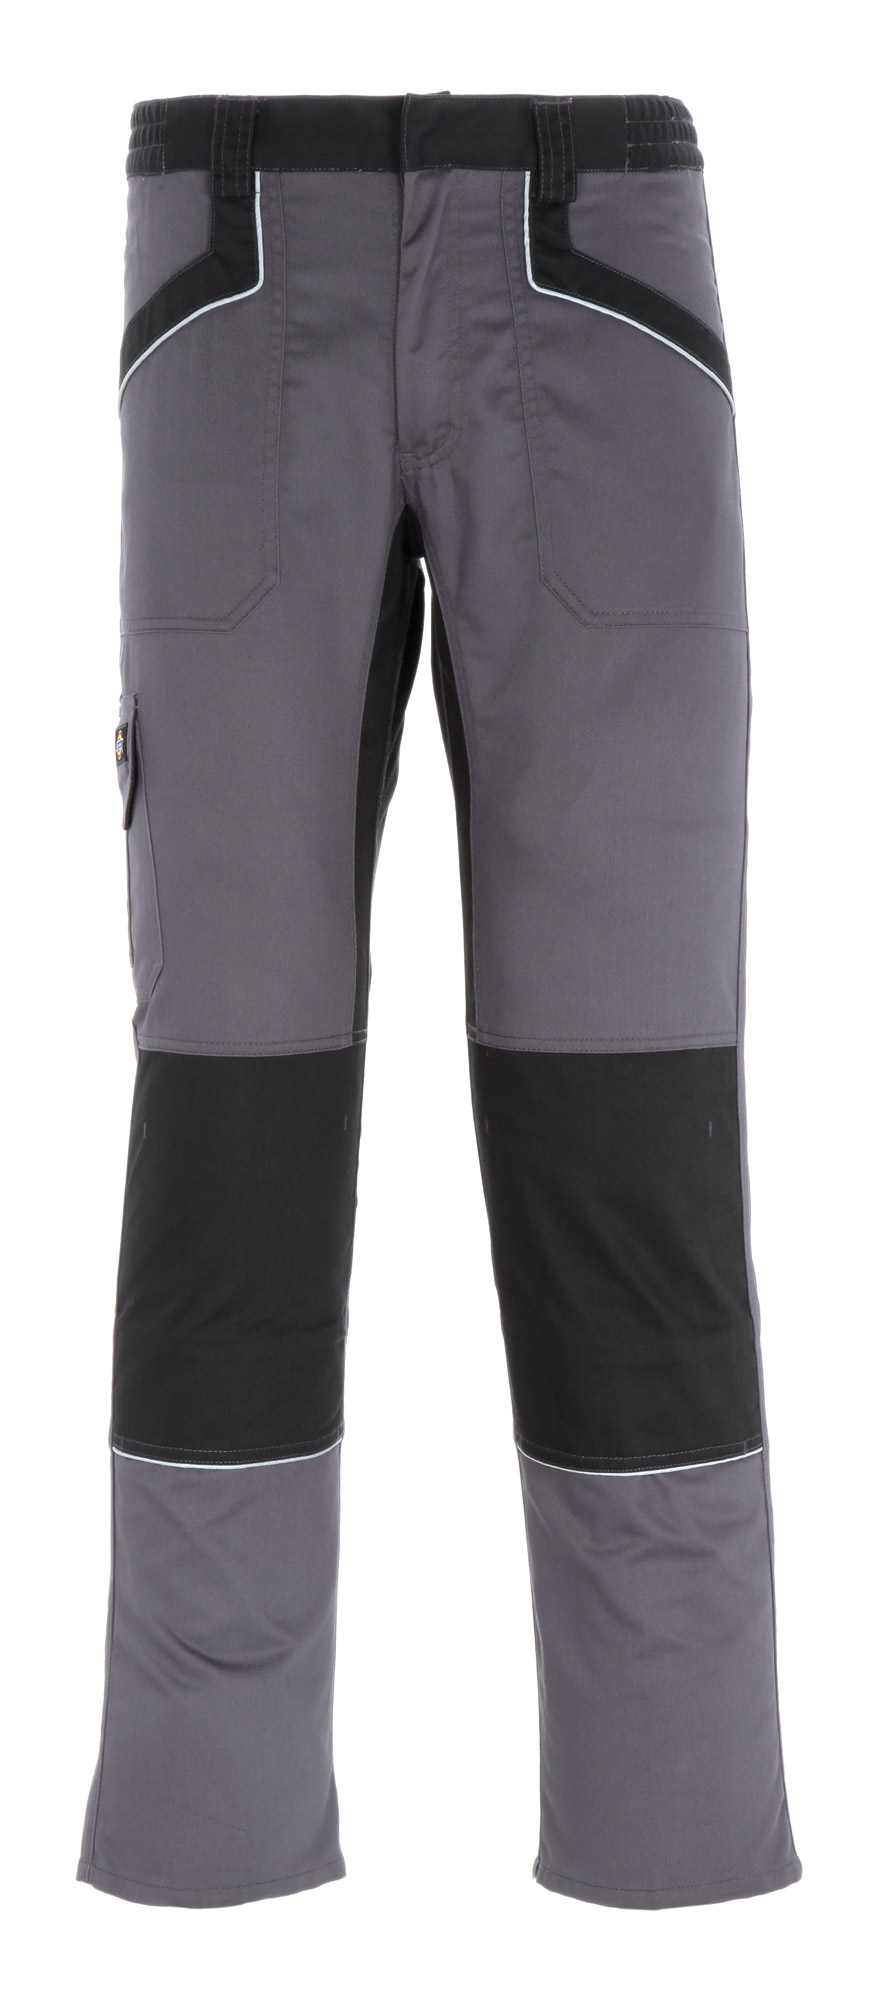 IND260 Trousers Grey/Black 54